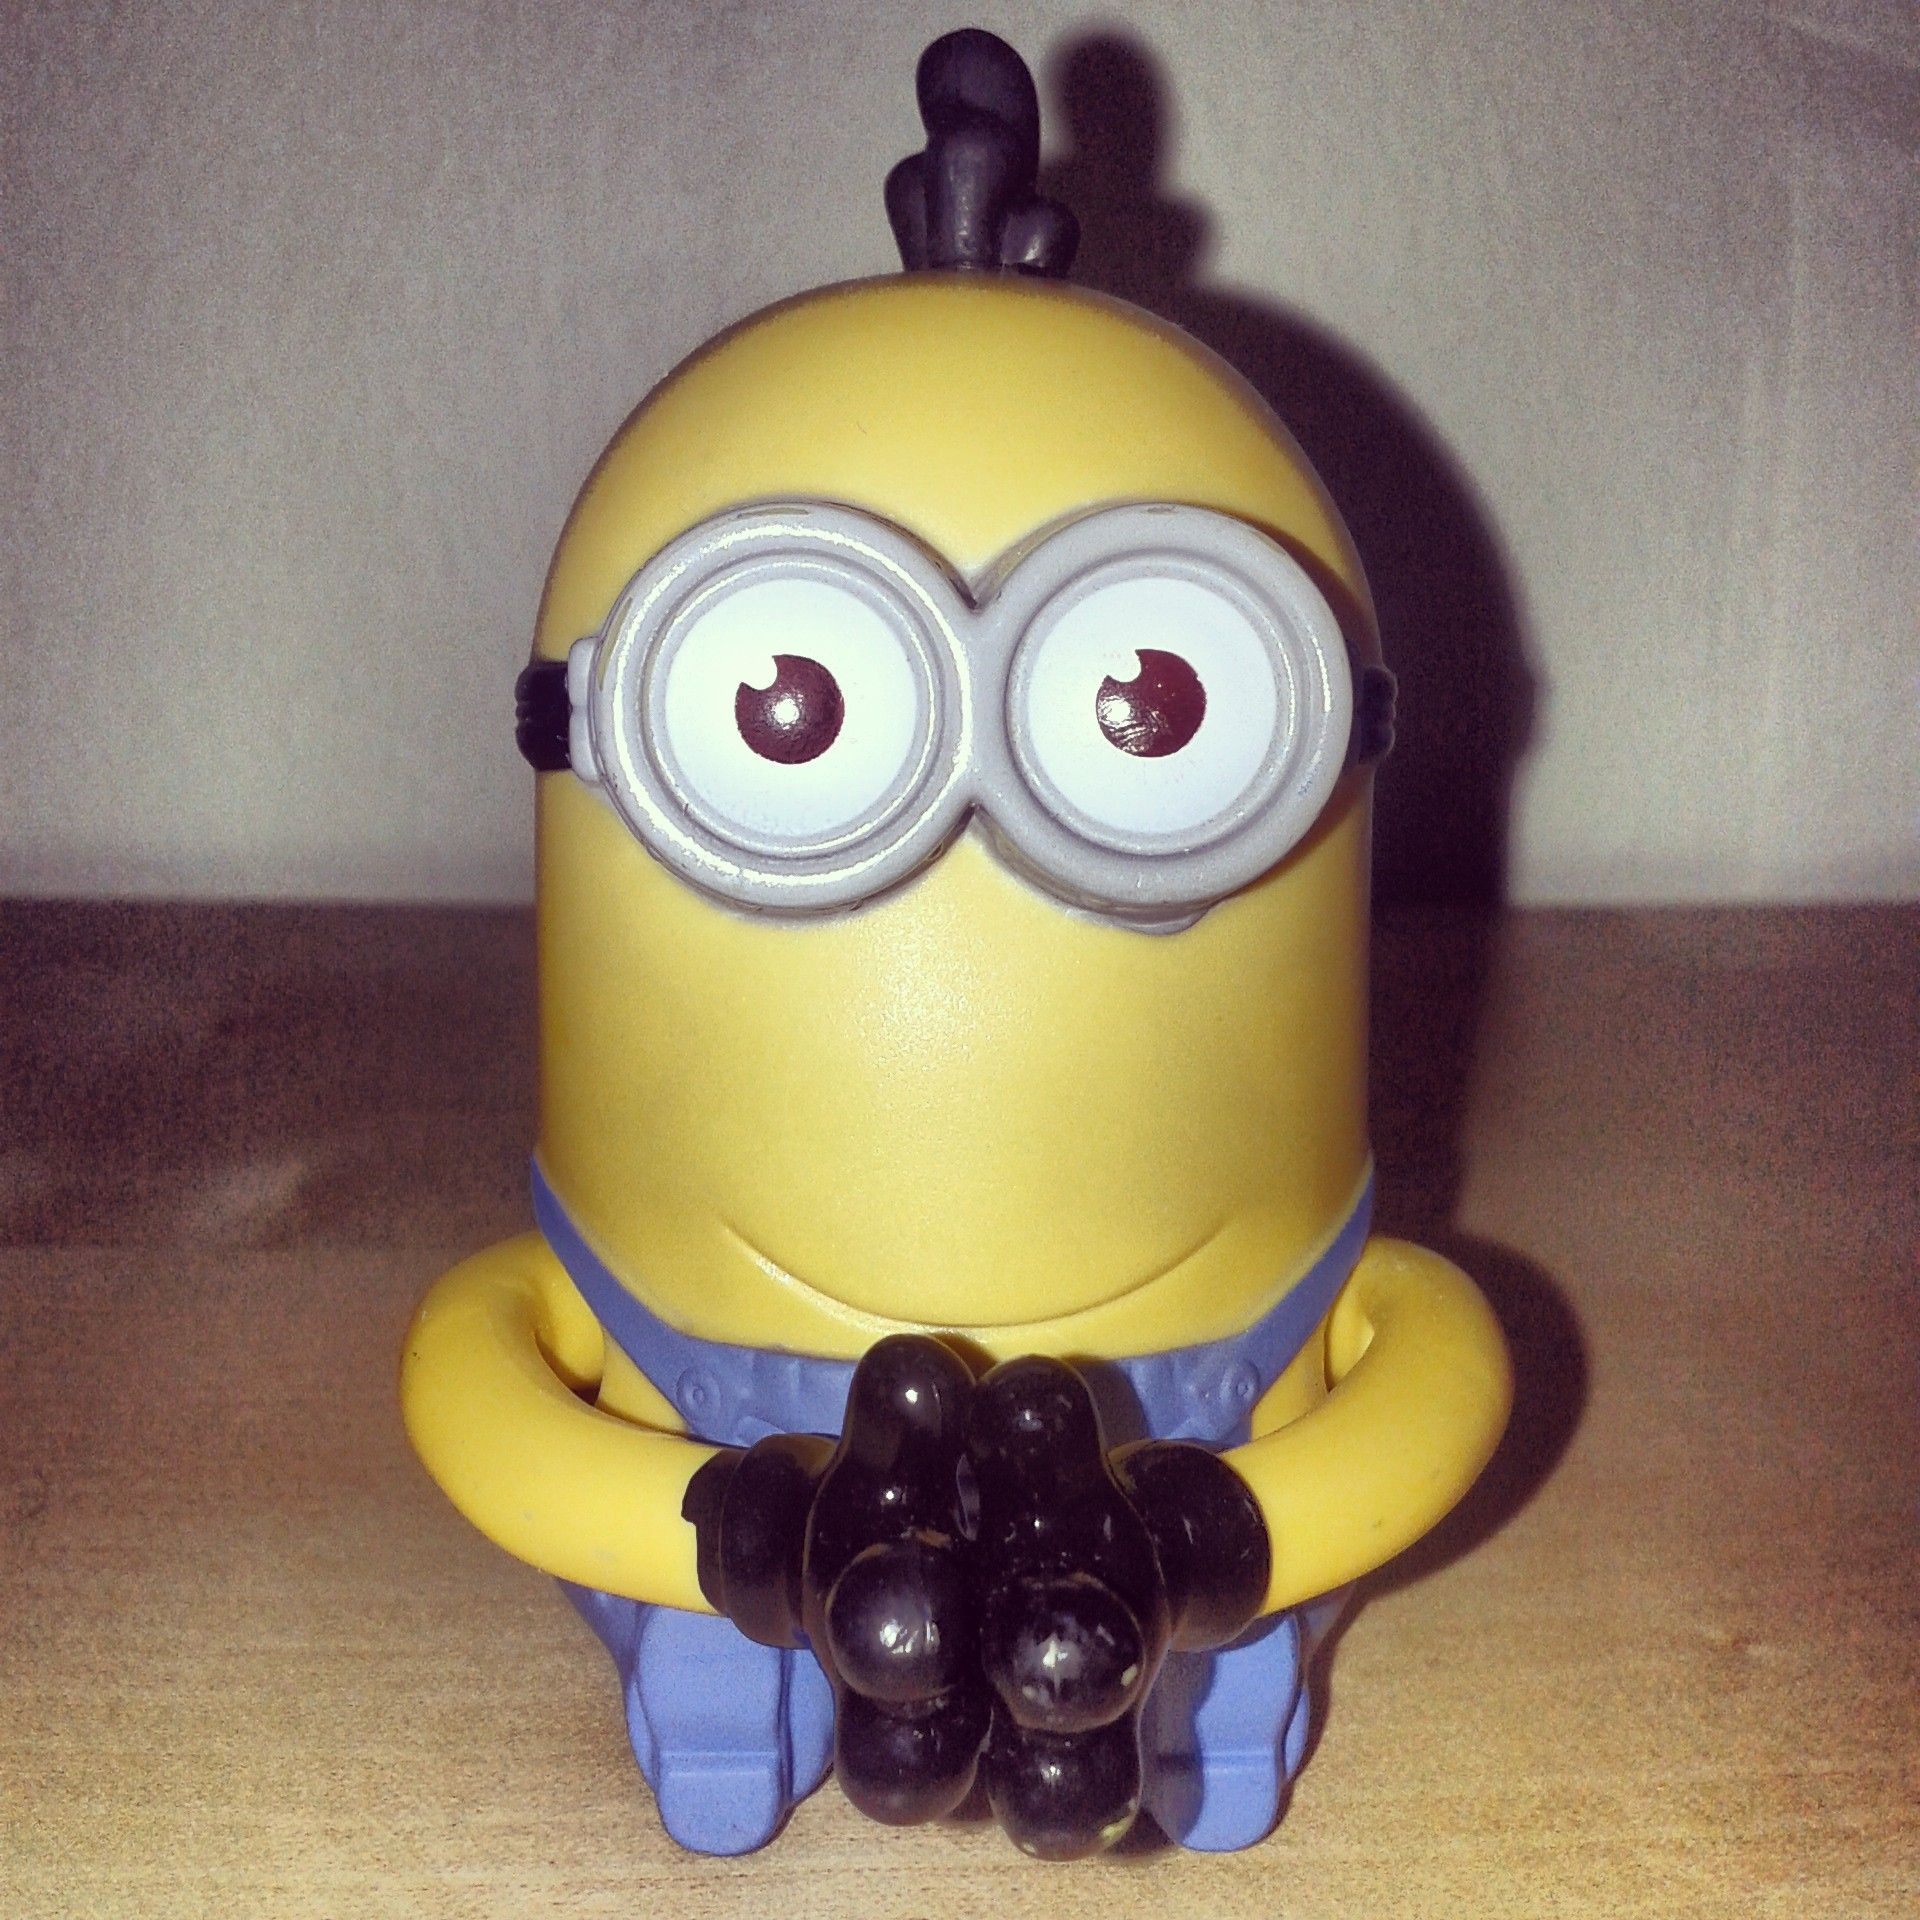 Minion No 2 Tim Giggle Grabber Mcdonald Malaysia S Happy Meal Toys Despicable Me 2 Minions Mcd Mcdonal Happy Meal Toys Happy Meal Mcdonalds Happy Meal